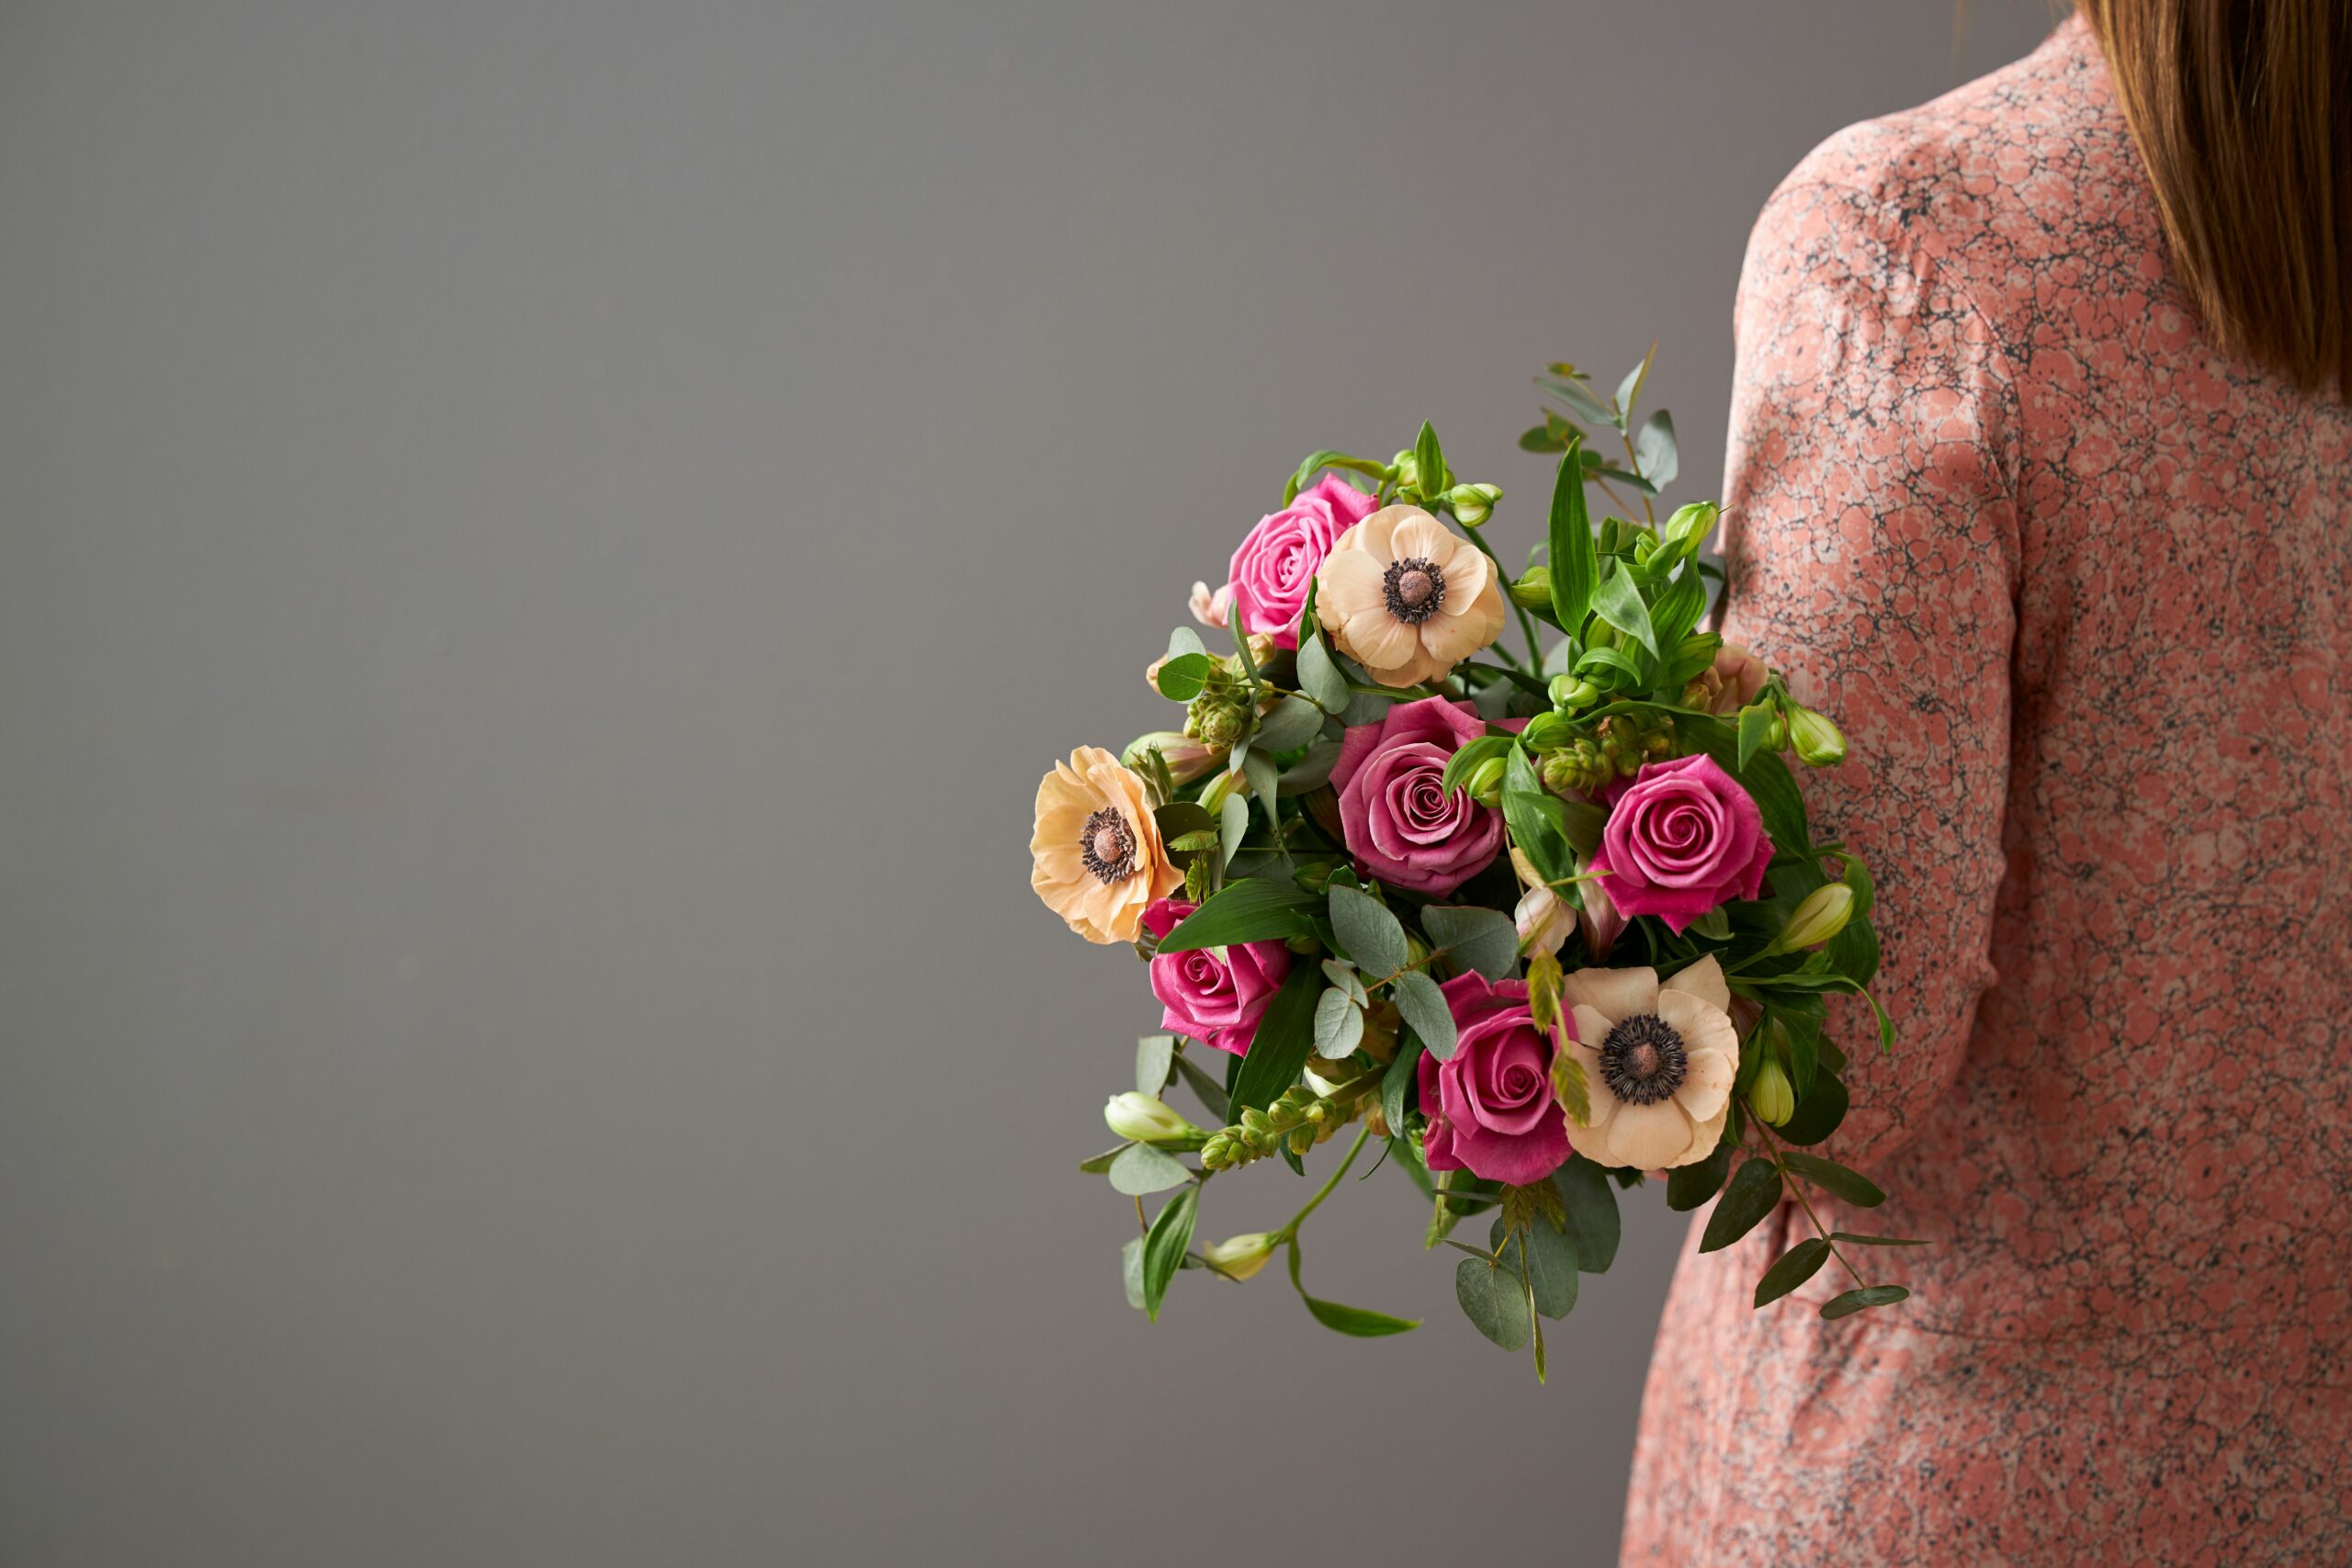 flowr grey background bouquet of pink and dustry rose flowers